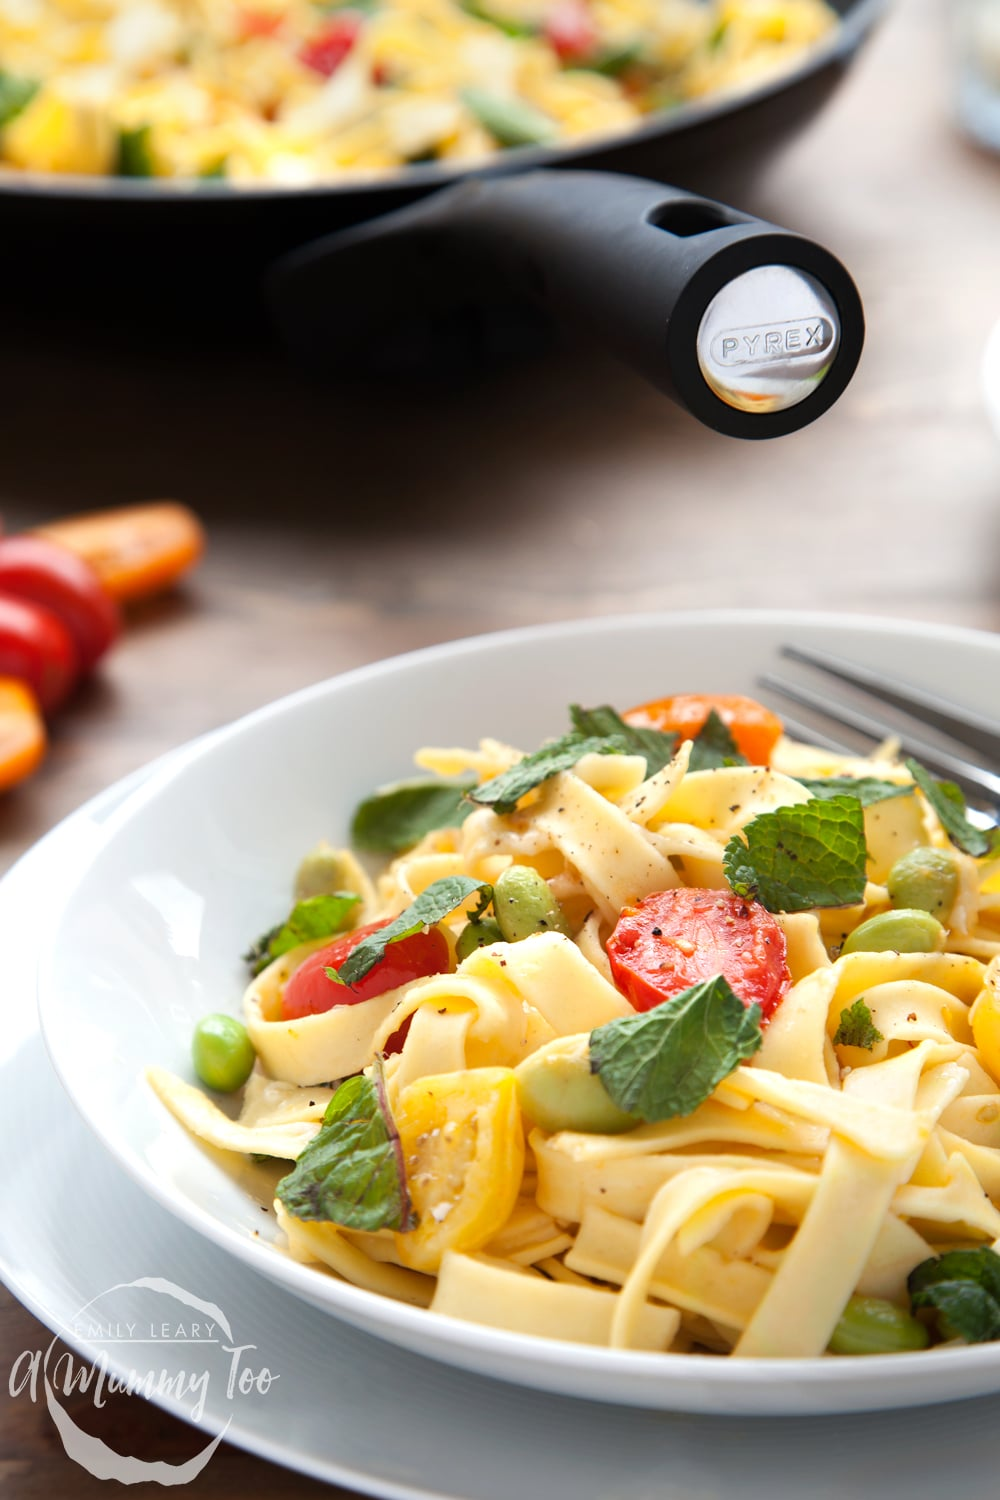 This tagliatelle is mixed with with tricolour tomatoes, edamame and mint for a deliciously flavoursome pasta dish